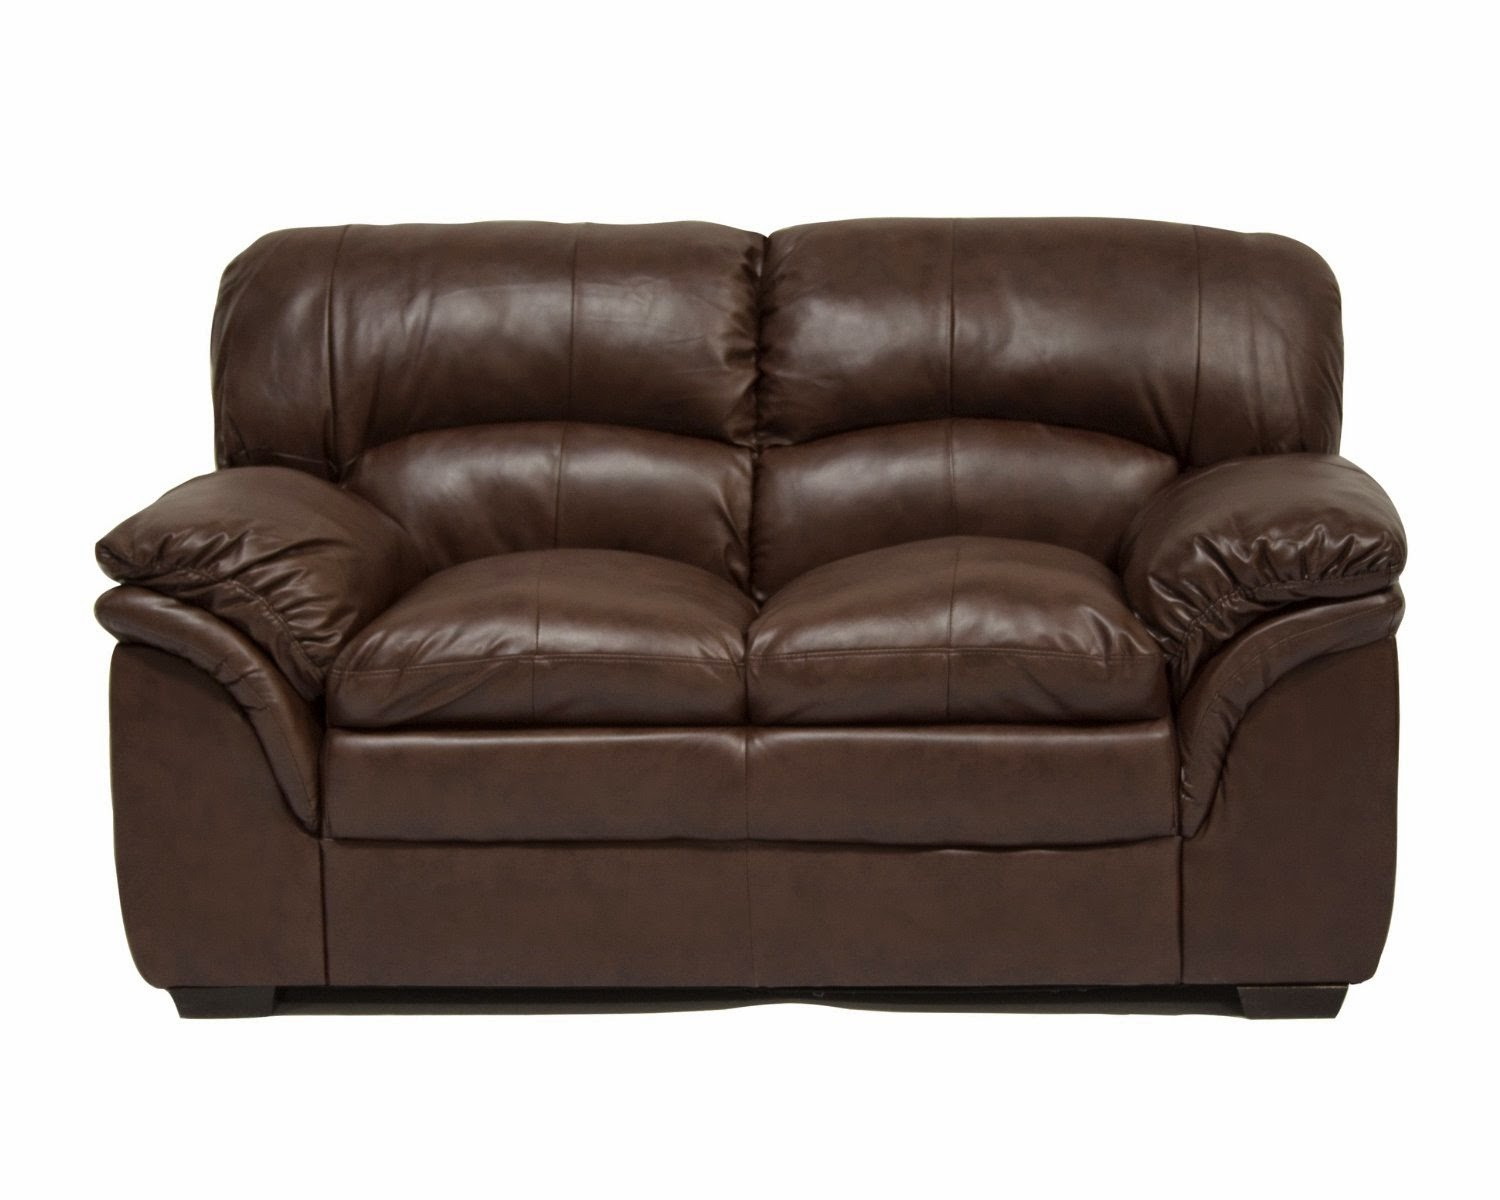 Cheap reclining sofas sale 2 seater leather recliner sofa for Leather furniture